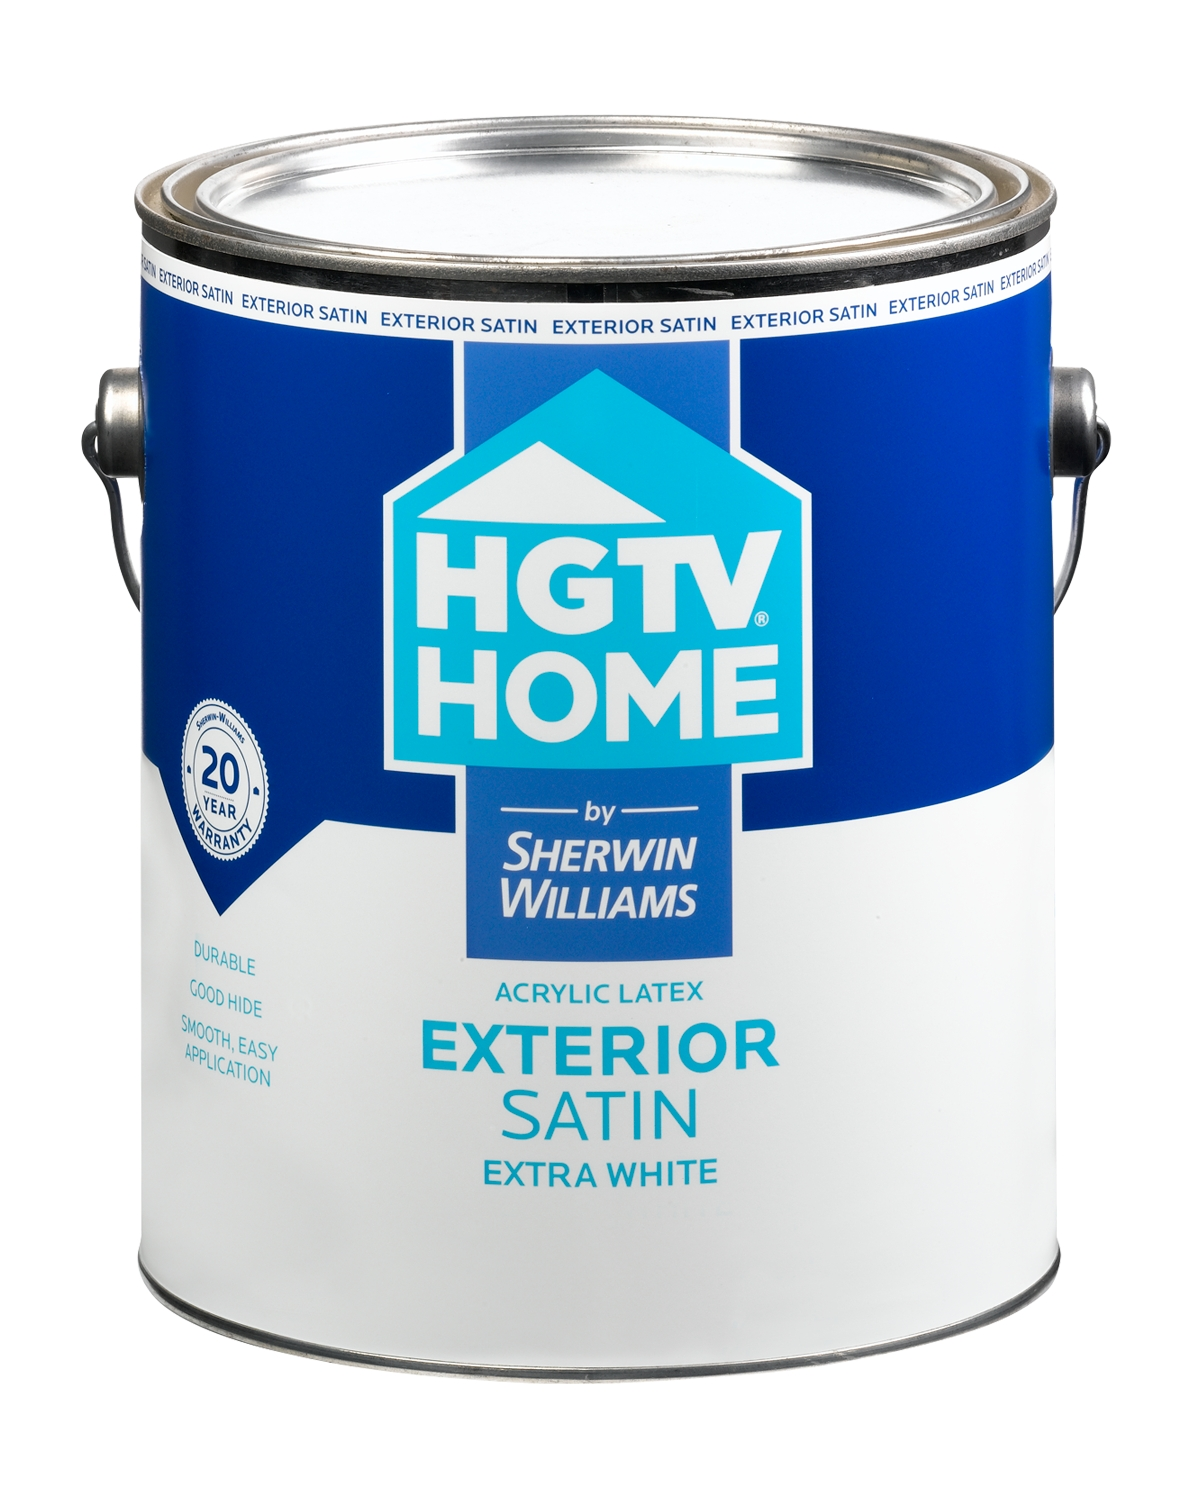 HGTV HOME™ by Sherwin-Williams Exterior Paint